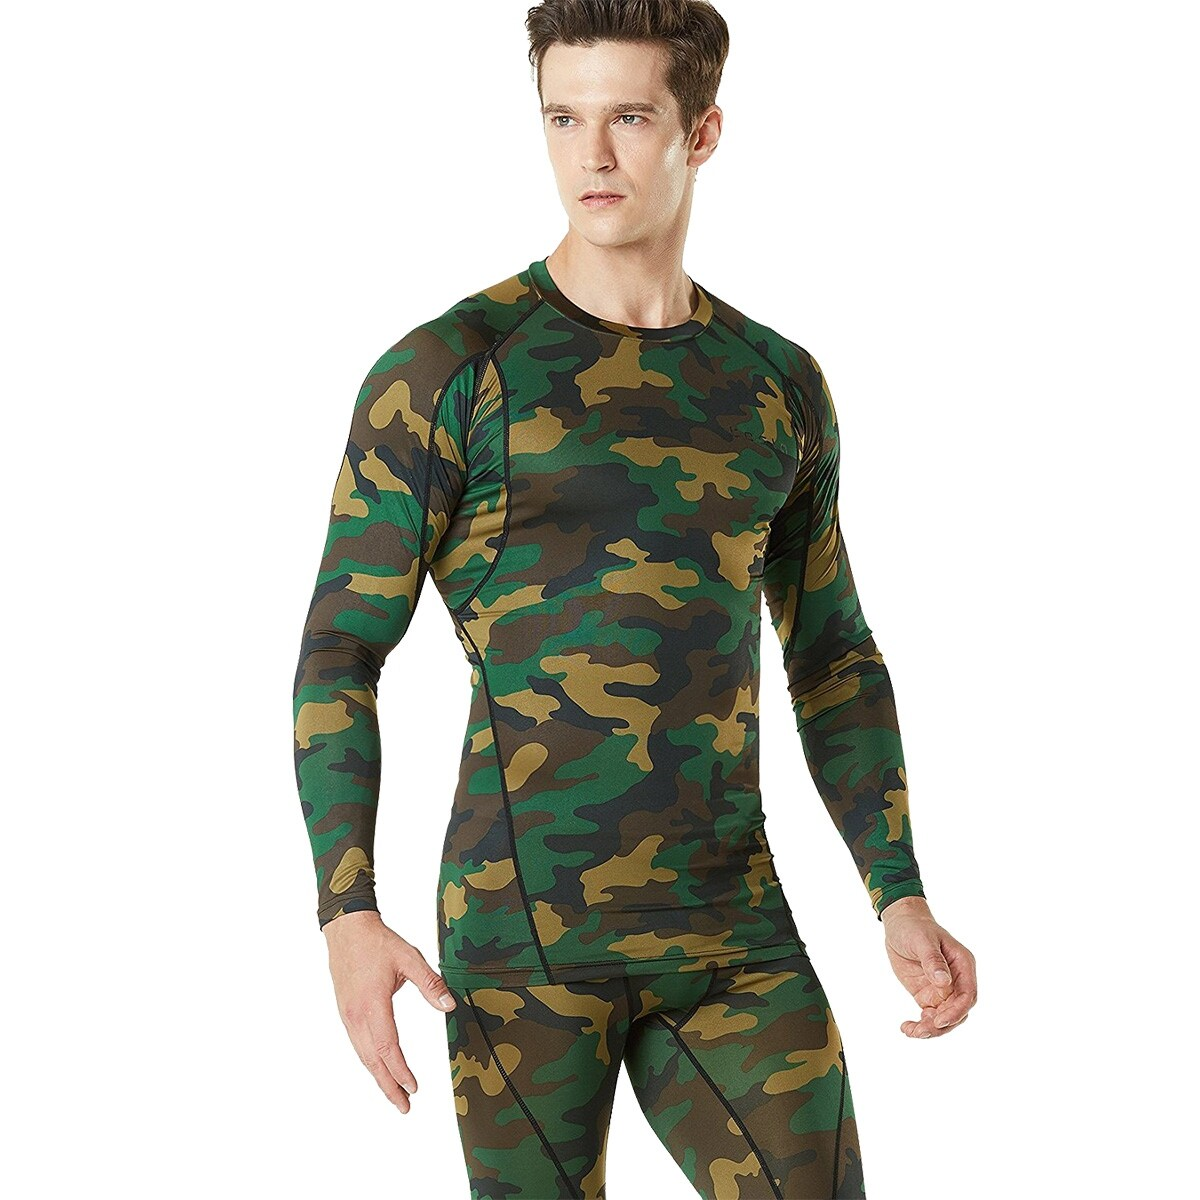 7e2acc8049 Shop TSLA Tesla MUD11 Cool Dry Long Sleeve Compression Shirt - Woodland  Camo/Olive - Free Shipping On Orders Over $45 - Overstock - 18910228